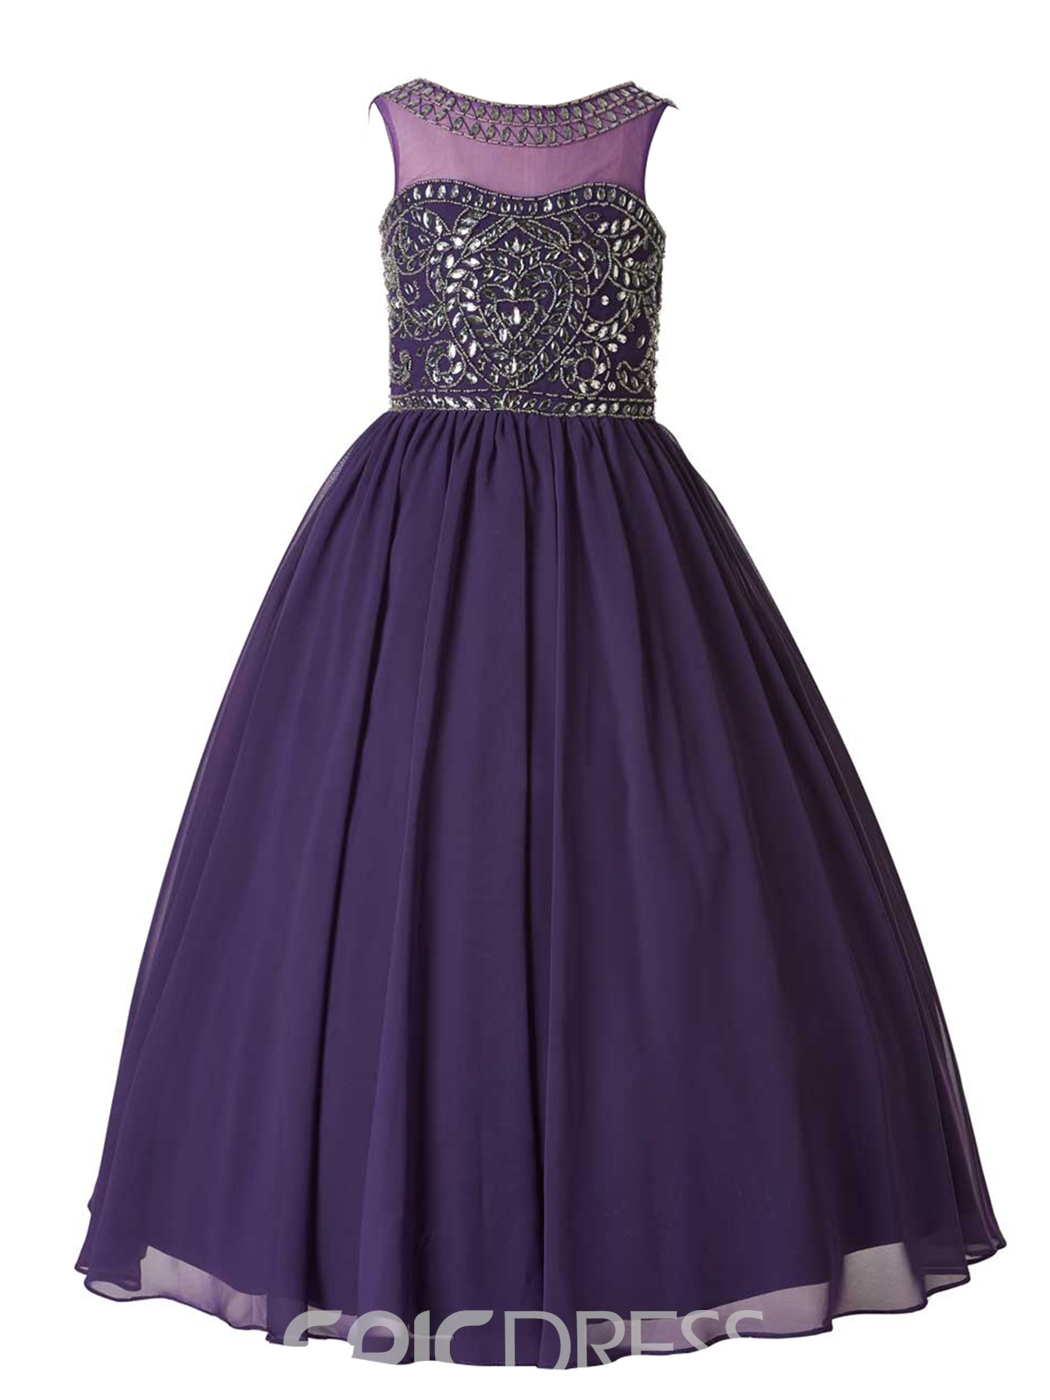 Ericdress High Quality Jewel Beaded Ball Gown Flower Girl Party Dress